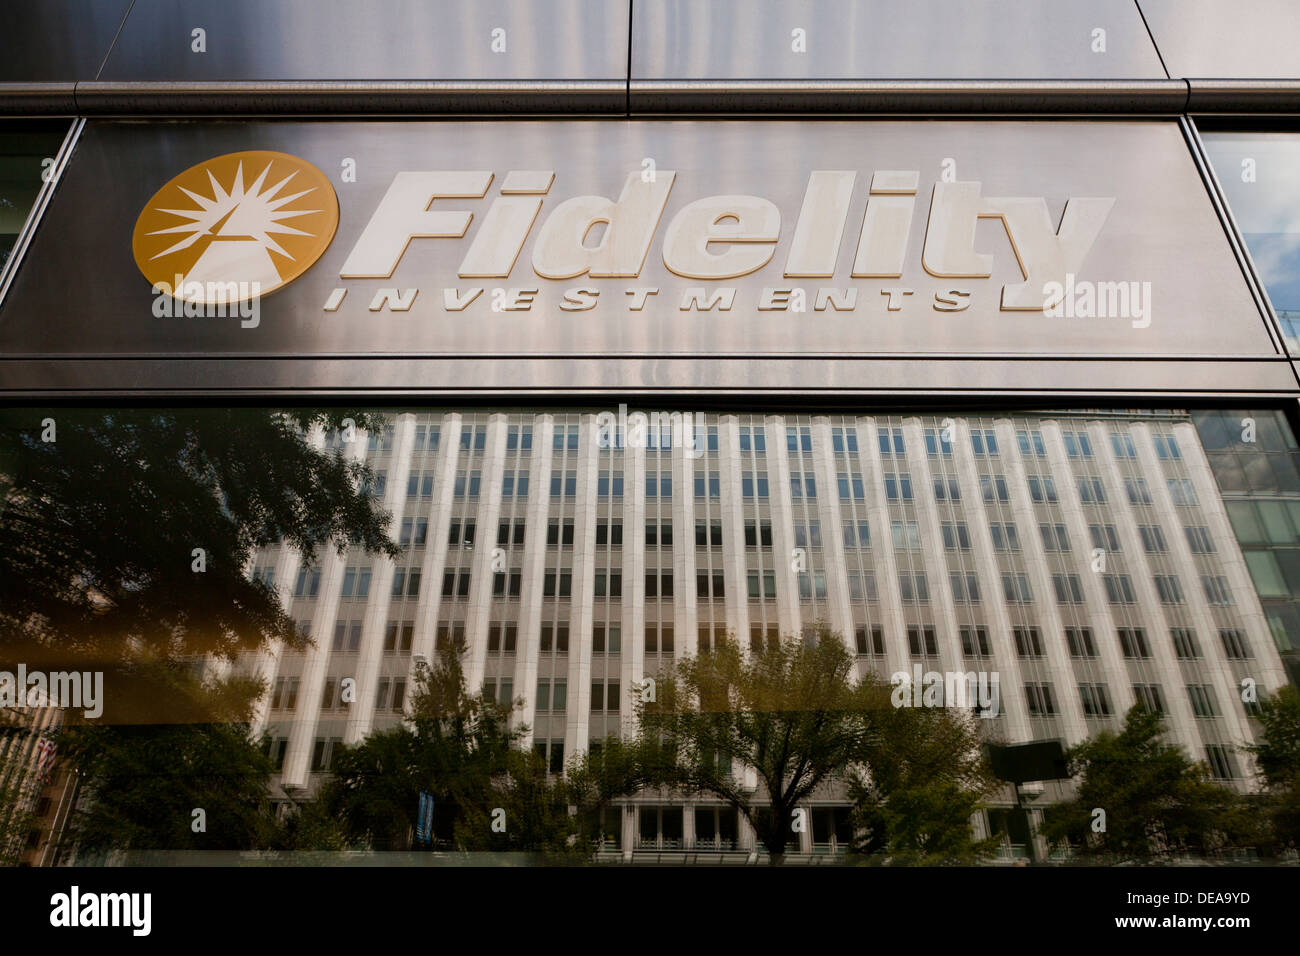 Fidelity Investments office sign - Stock Image